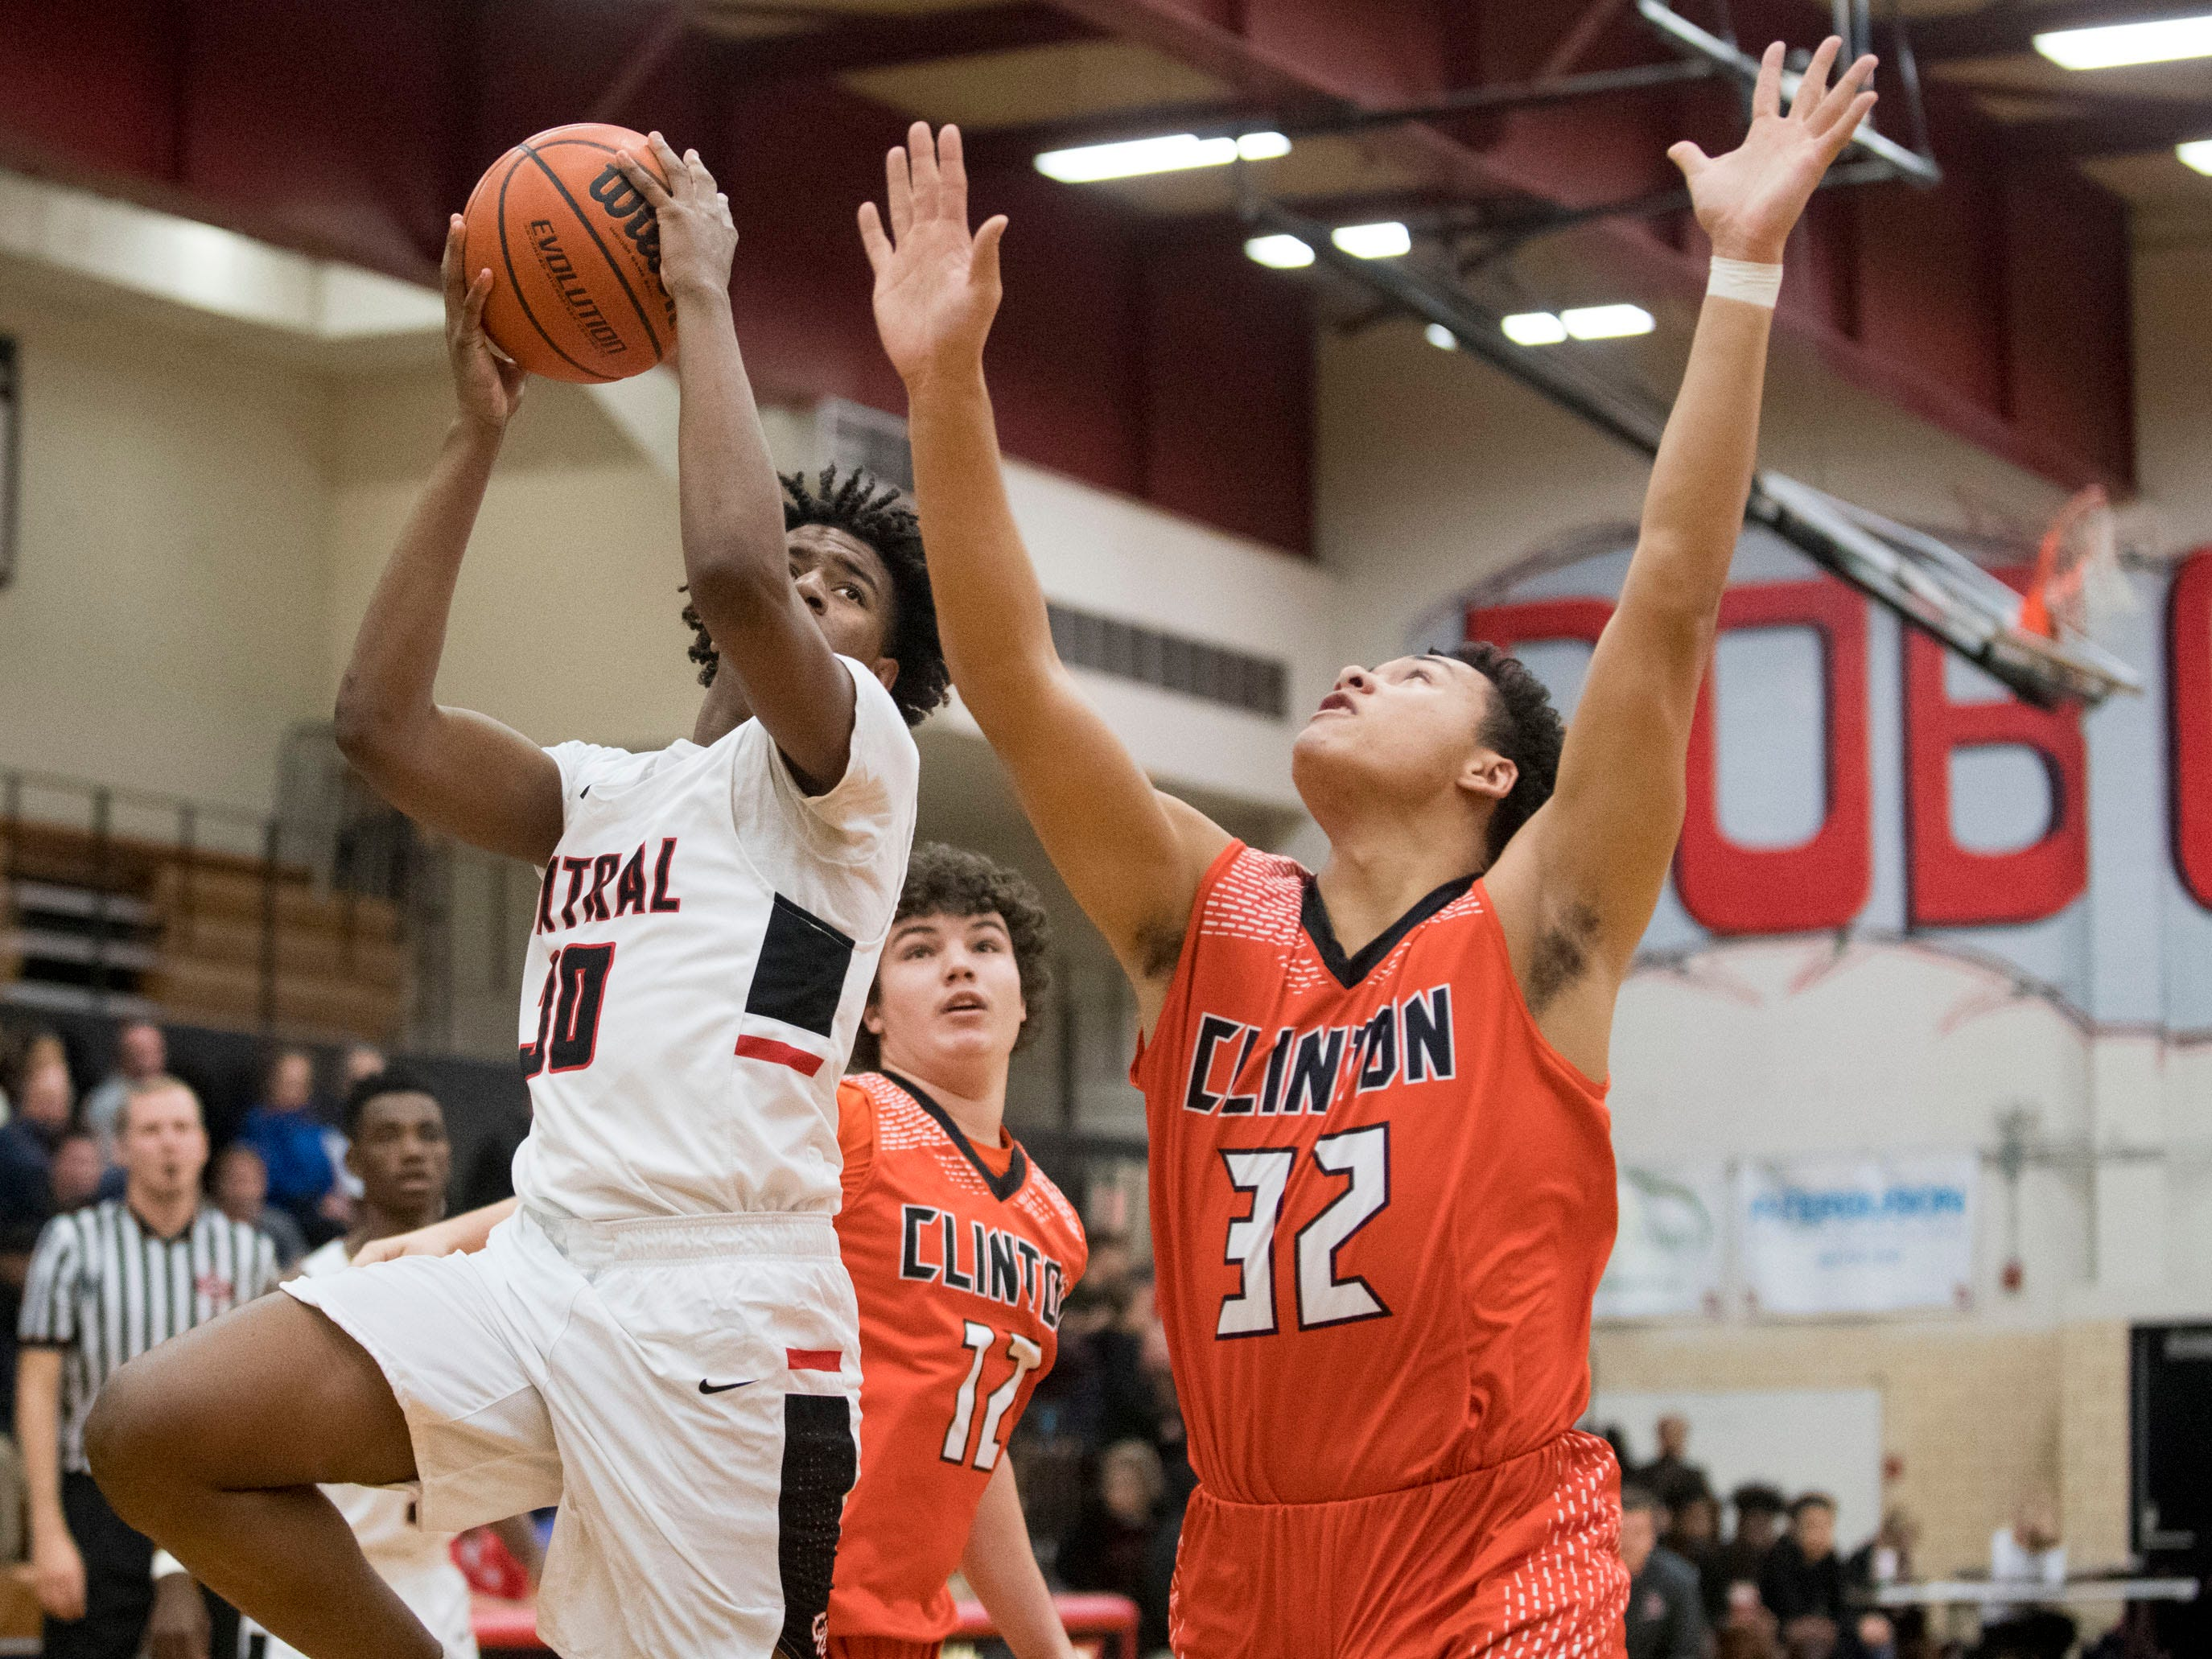 Central's Ahmad Belton Jr. (30) looks for the shot while defended by Clinton's DeMarcus McKamey (32) on Tuesday, December 11, 2018.